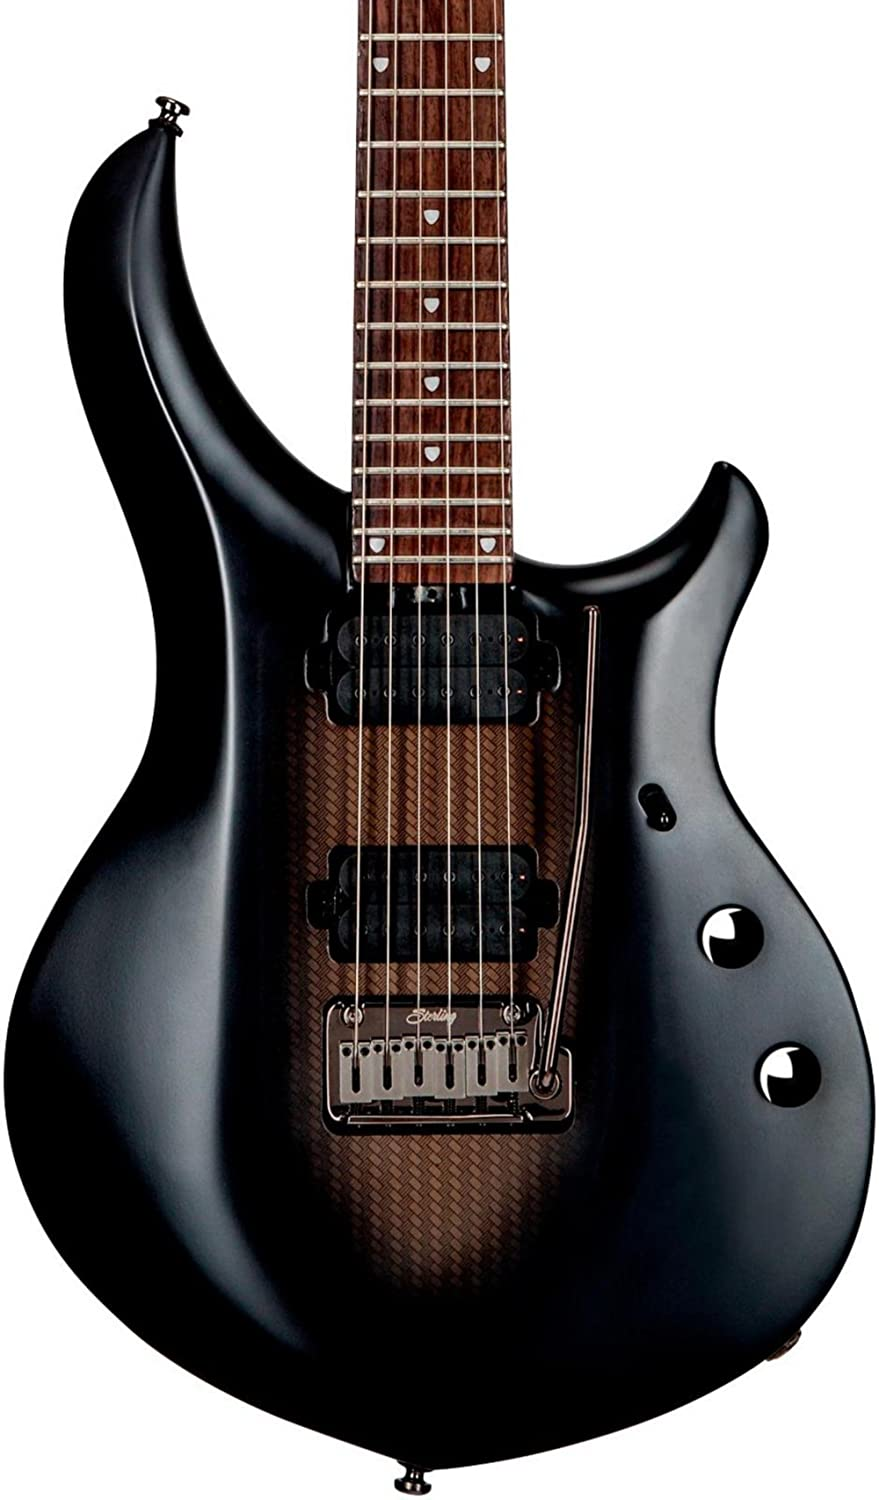 最安値で  Sterling by MUSICMAN Sterling by MAJ100 MUSICMAN Stealth Black B06XG45PHF, 知立市:2b0ea0e7 --- goumitra.com